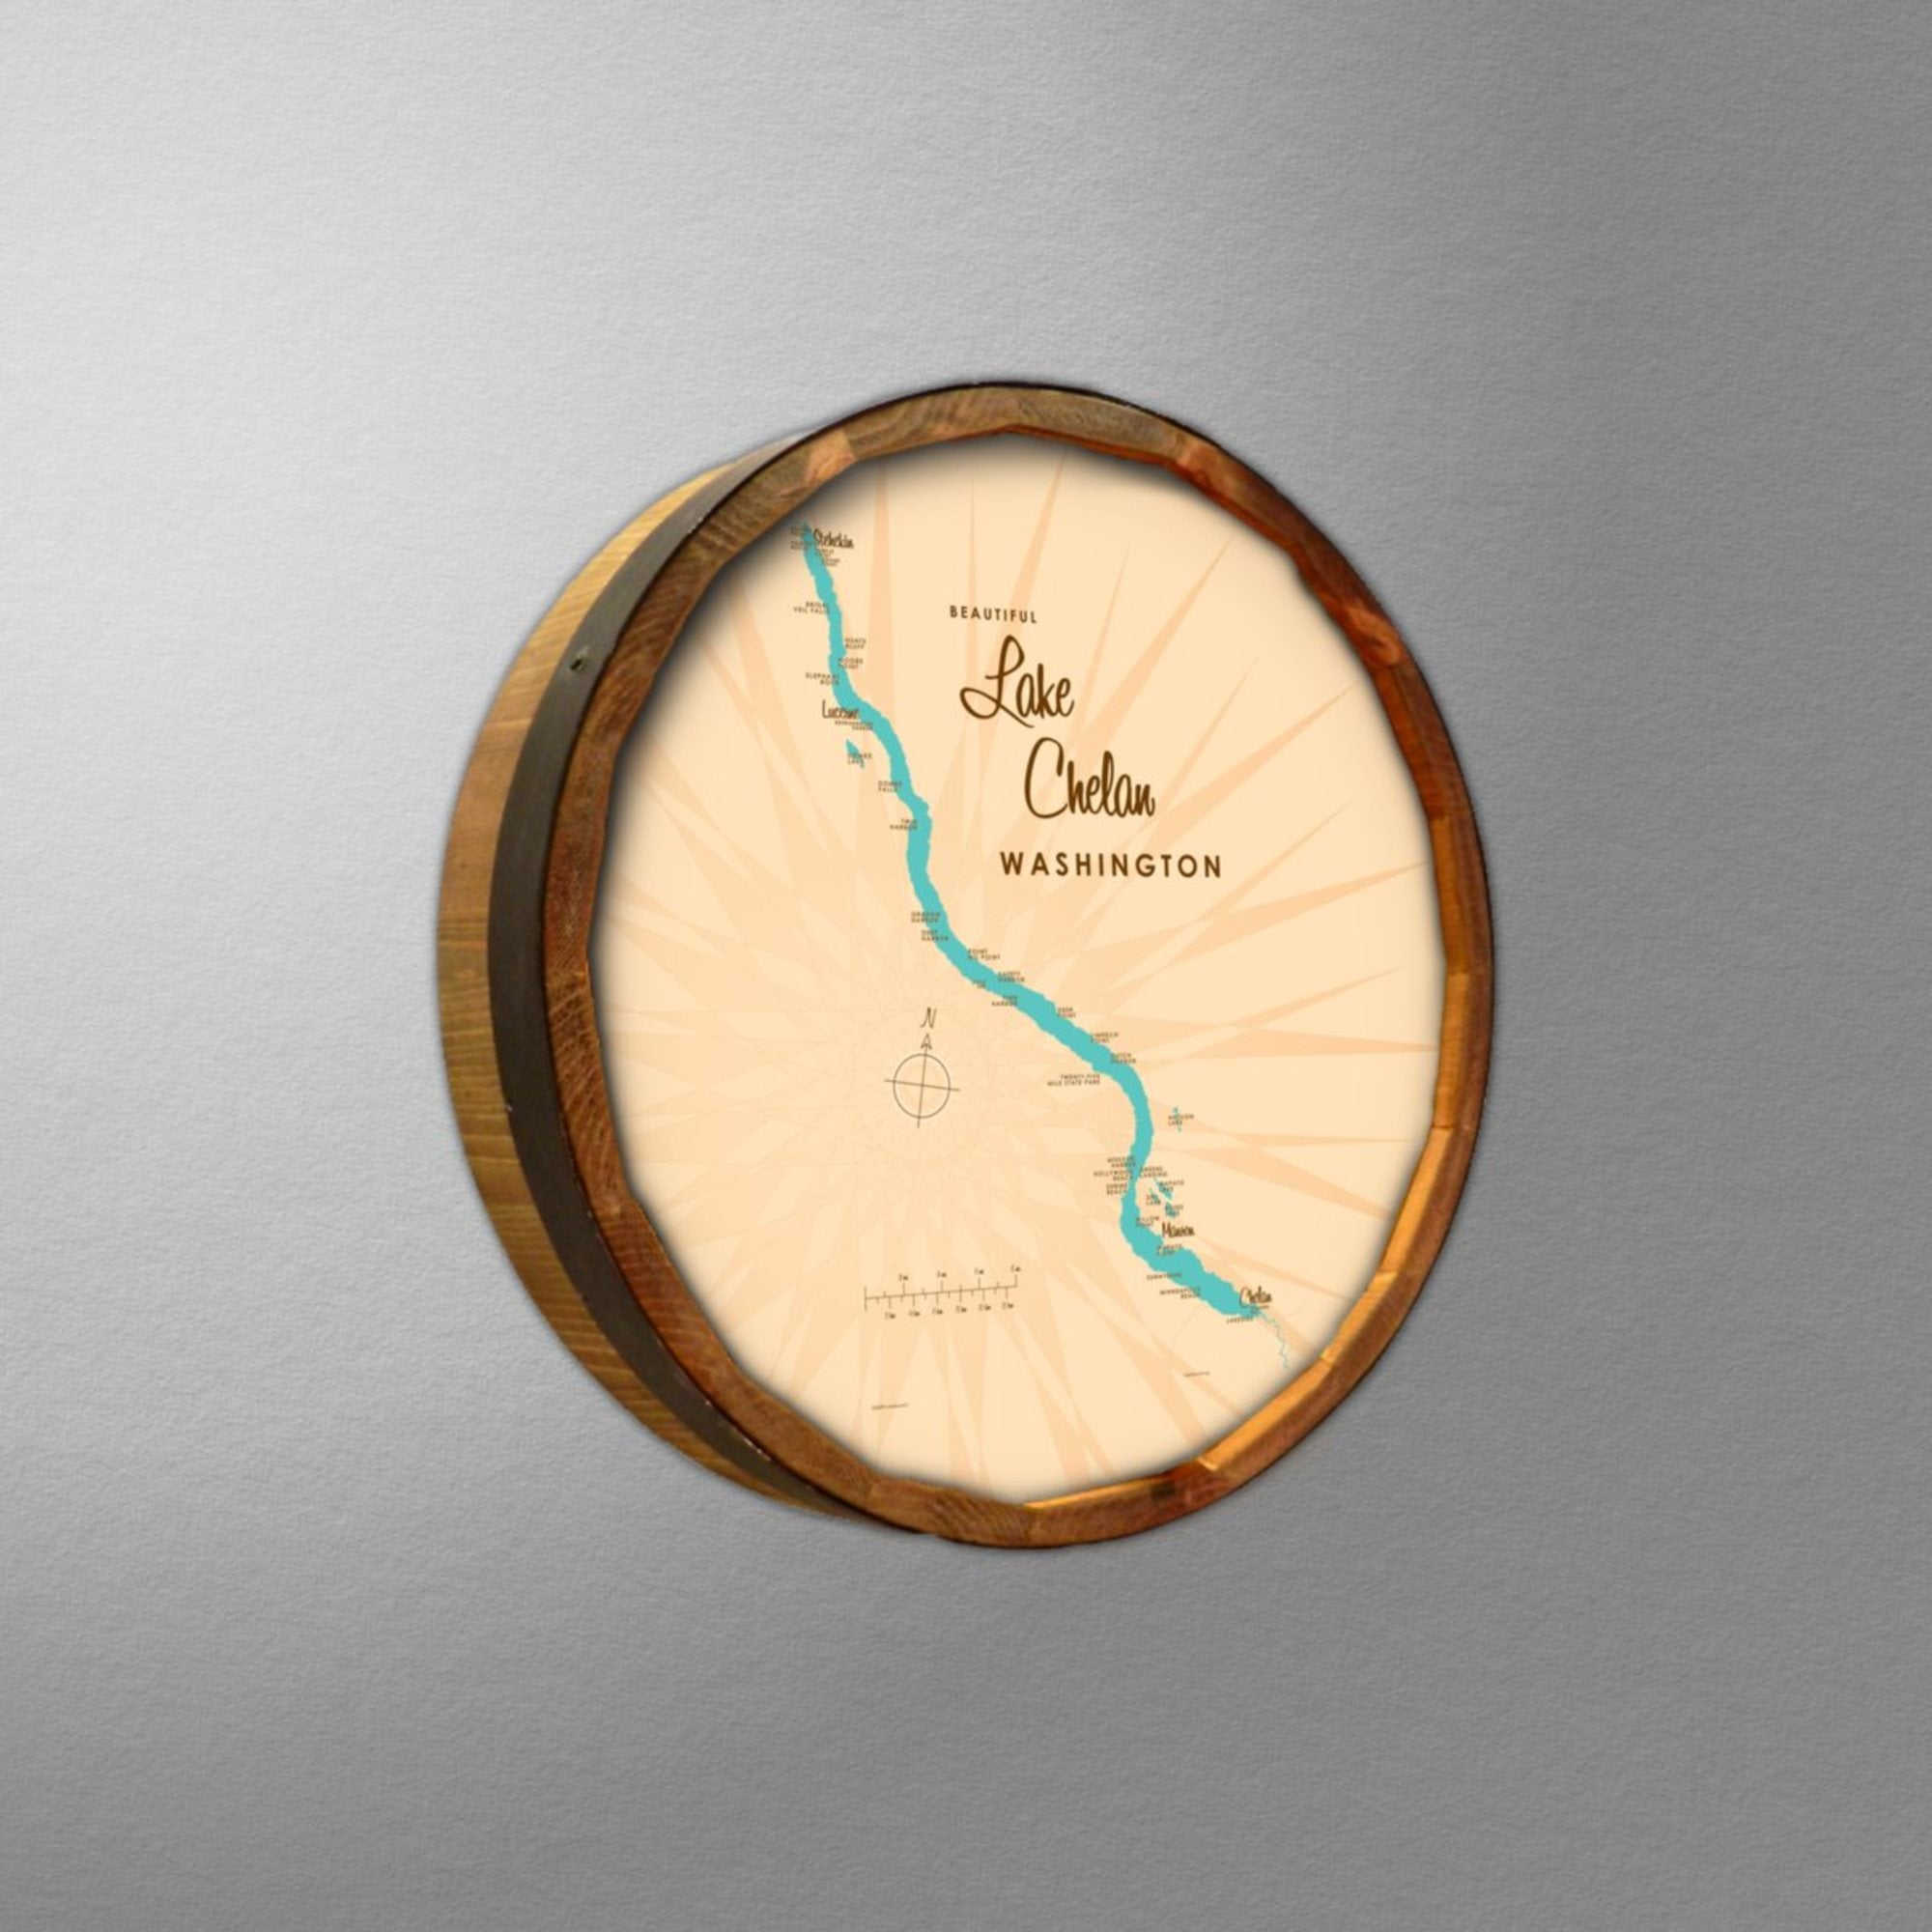 Lake Chelan Washington, Barrel End Map Art